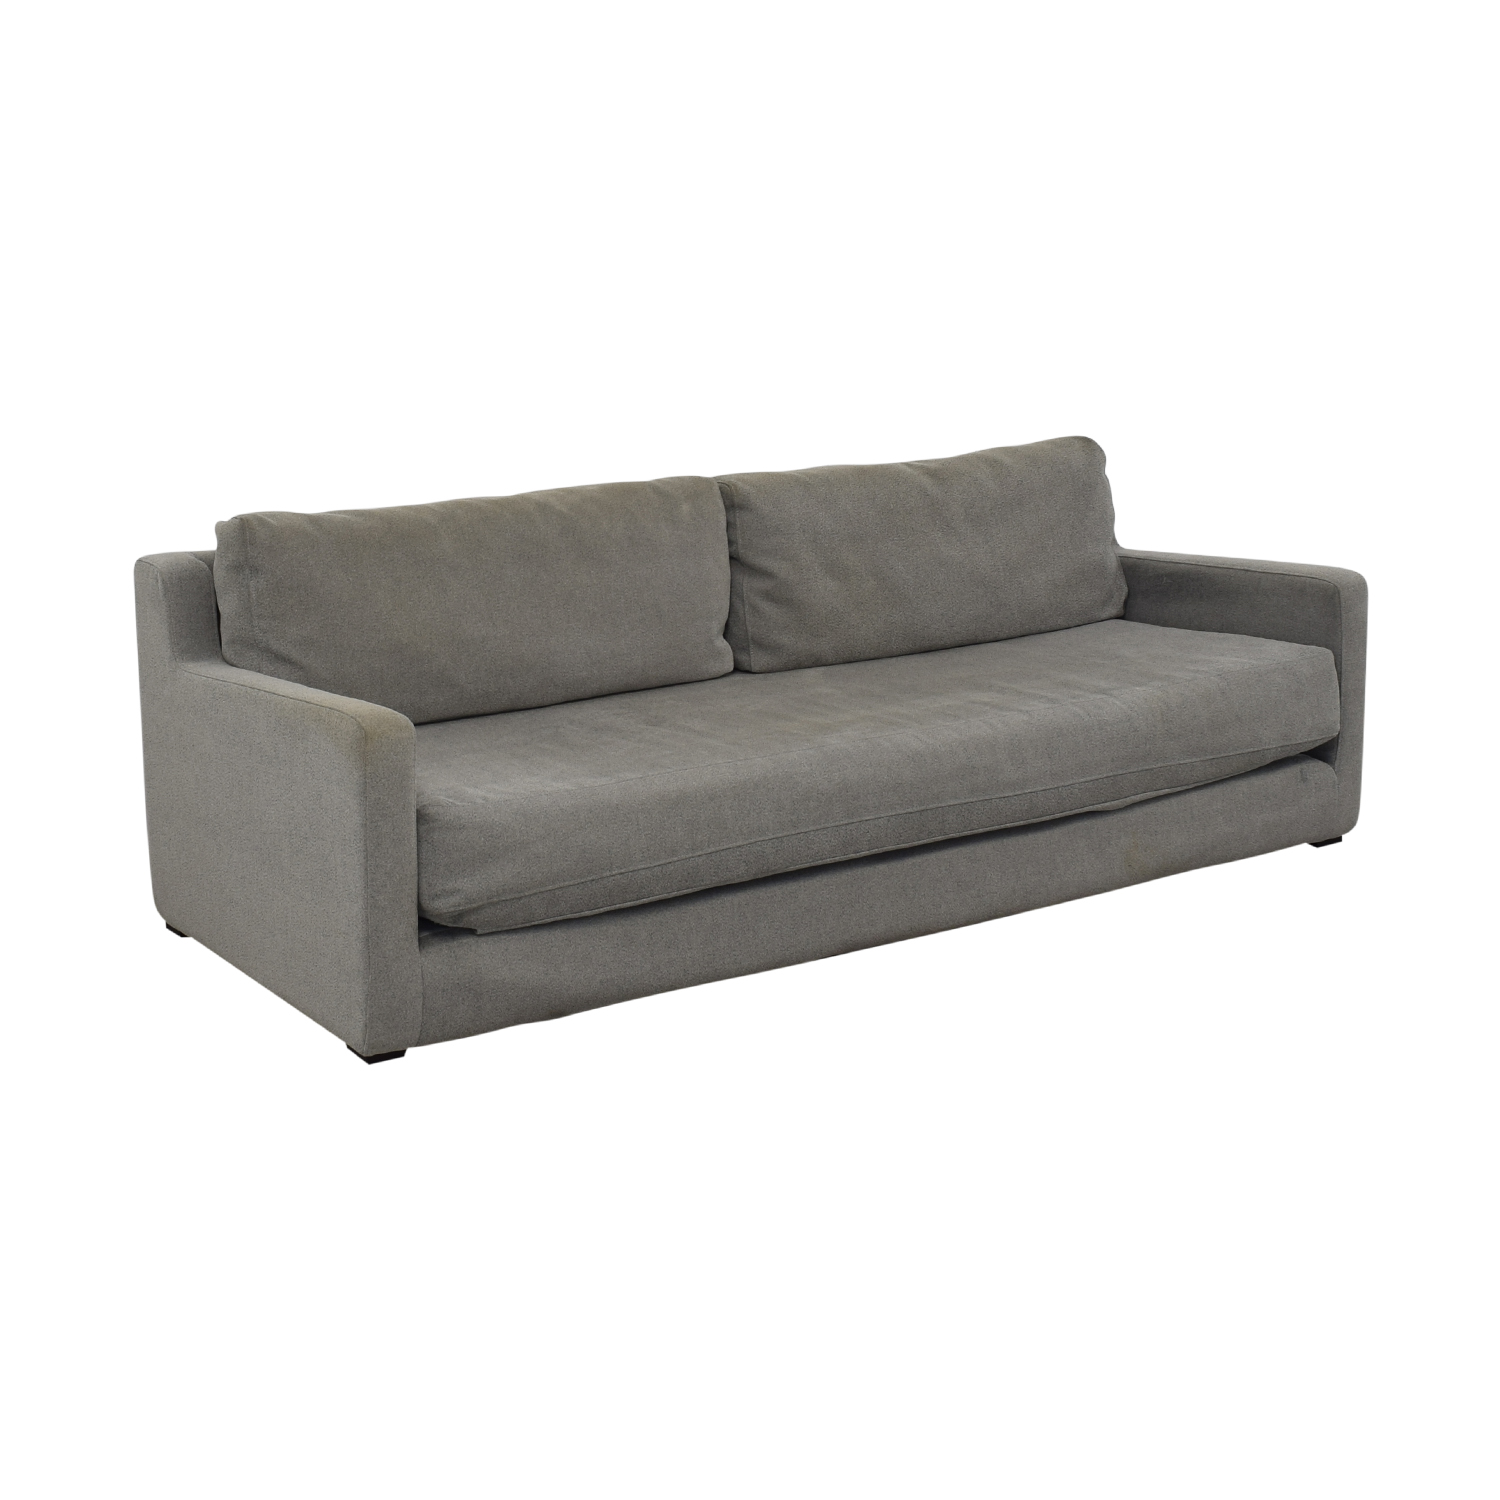 buy Gus Modern Fabric Sleeper Sofa Gus Modern